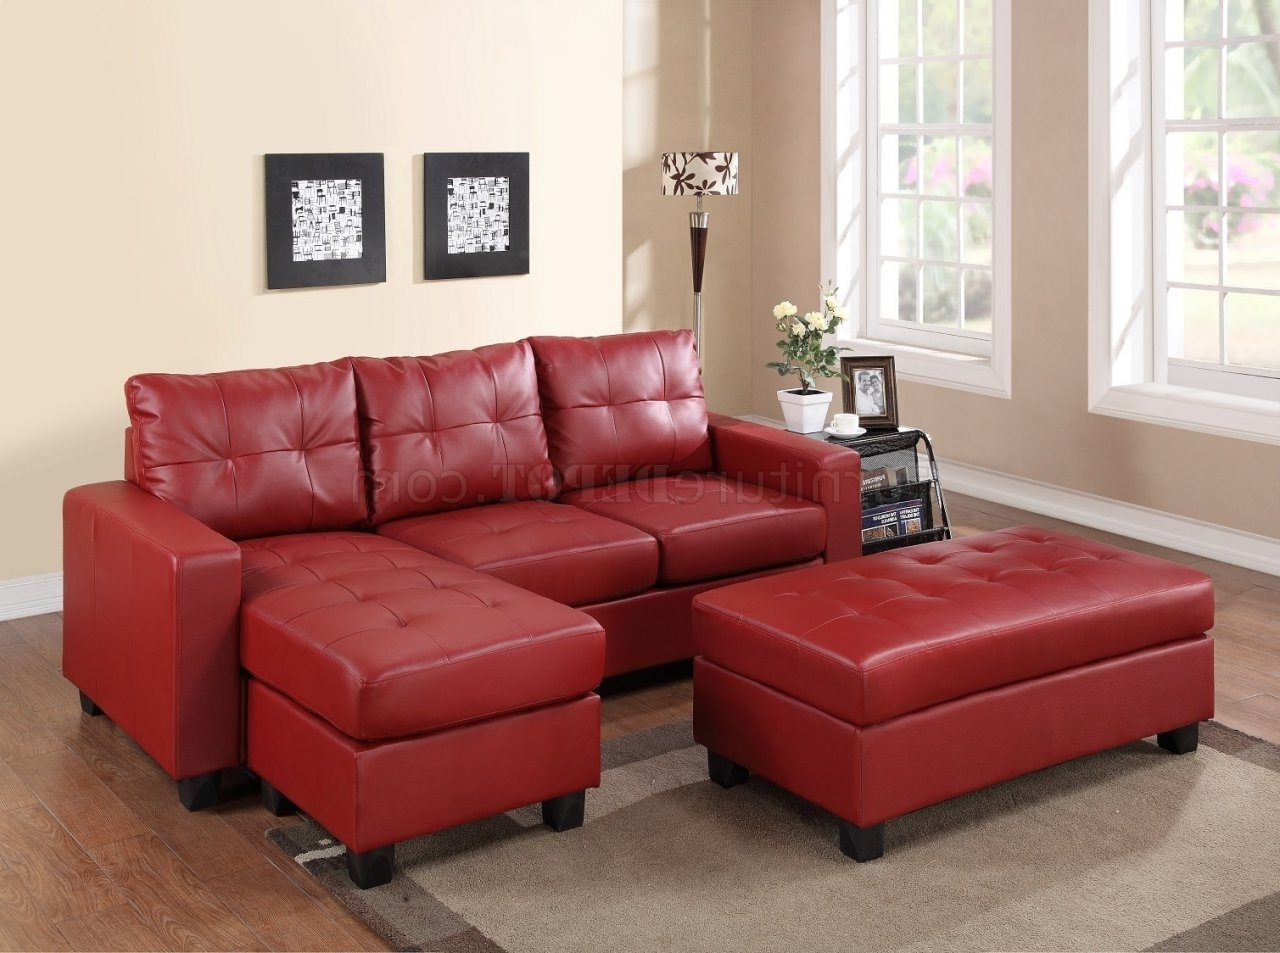 Most Popular Red Leather Sectionals With Chaise Within 2511 Sectional Sofa Set In Red Bonded Leather Match Pu (View 6 of 20)